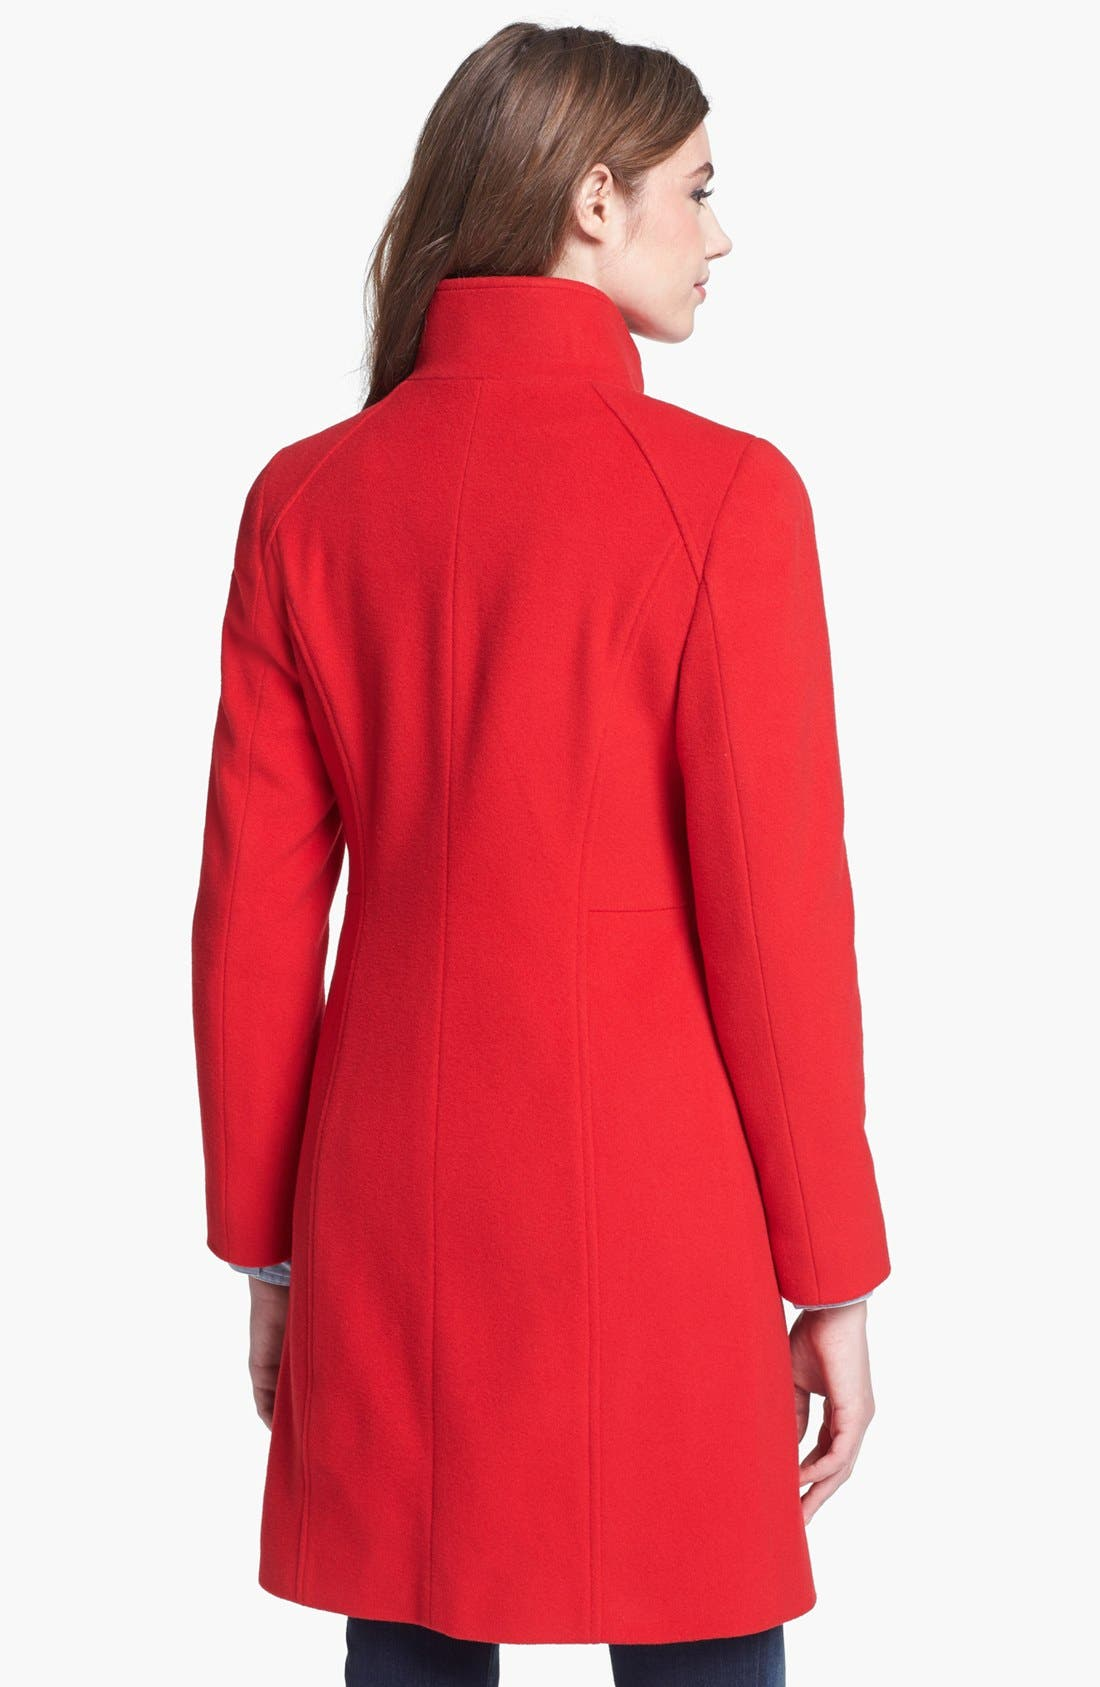 Alternate Image 2  - Cinzia Rocca Due Stand Collar Wool & Cashmere Blend Walking Coat (Petite)